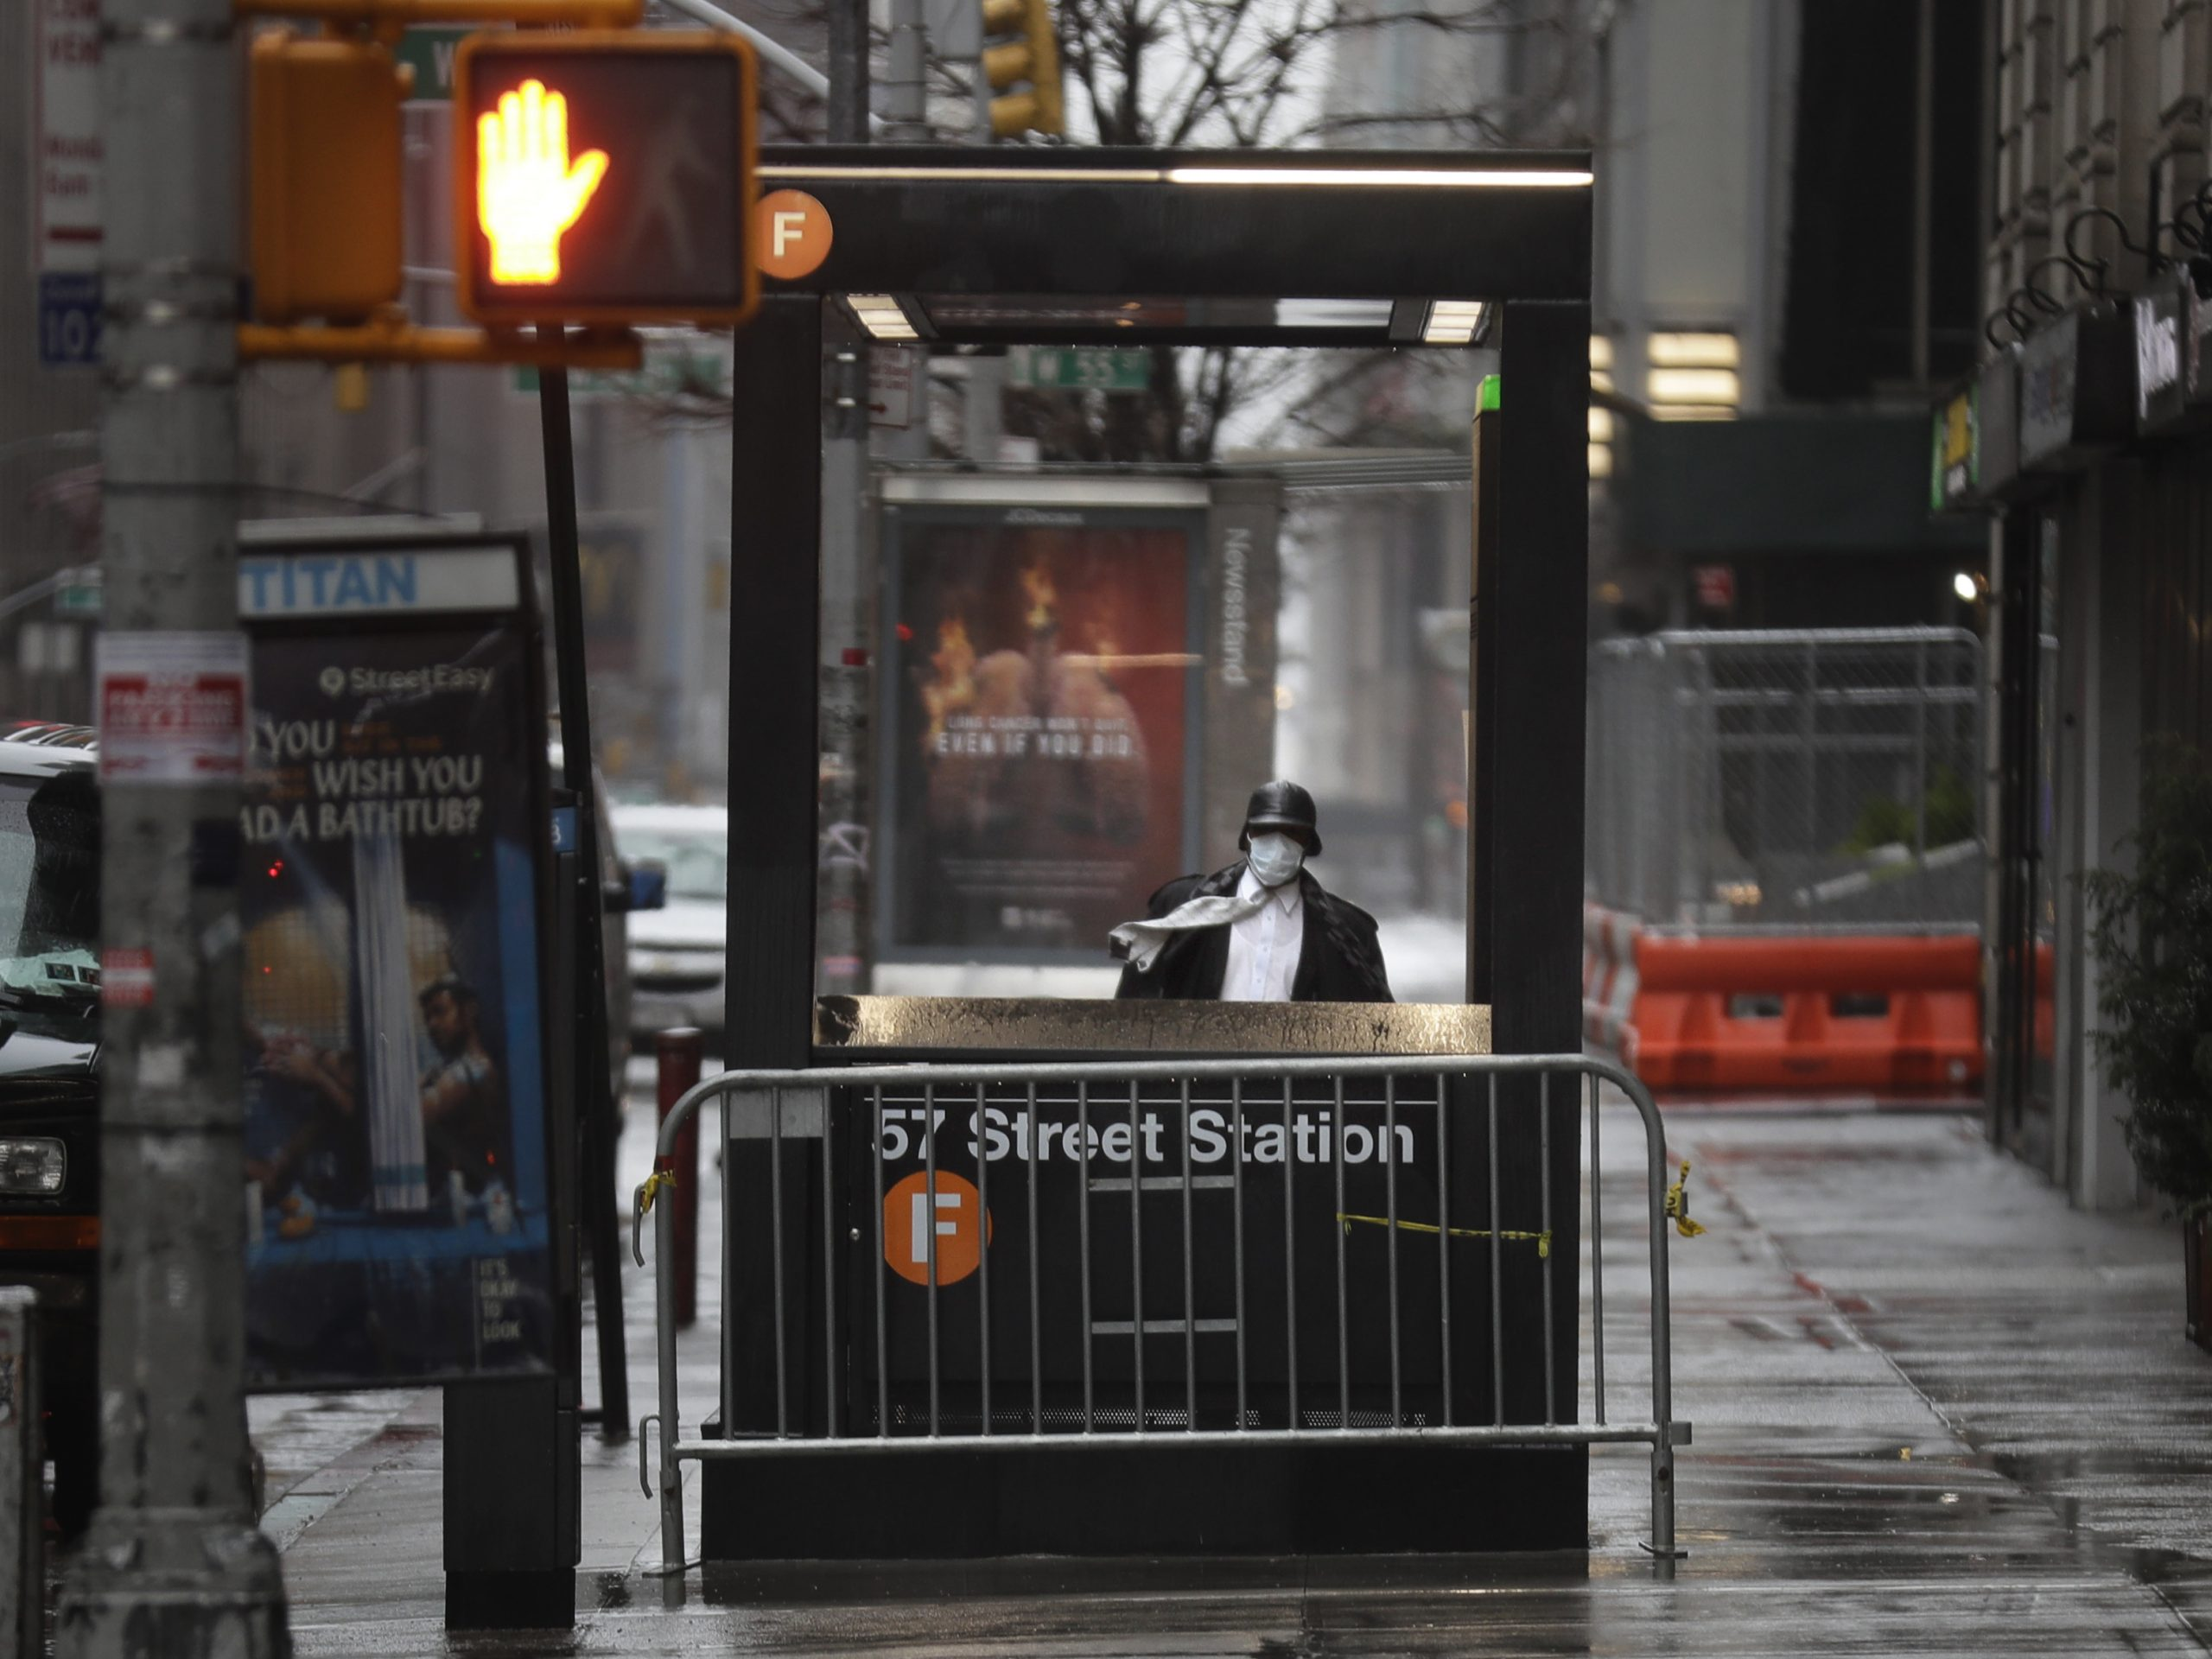 People in New York now have to wear face coverings when they are unable to stay 6 feet from others, such as when riding the subway.